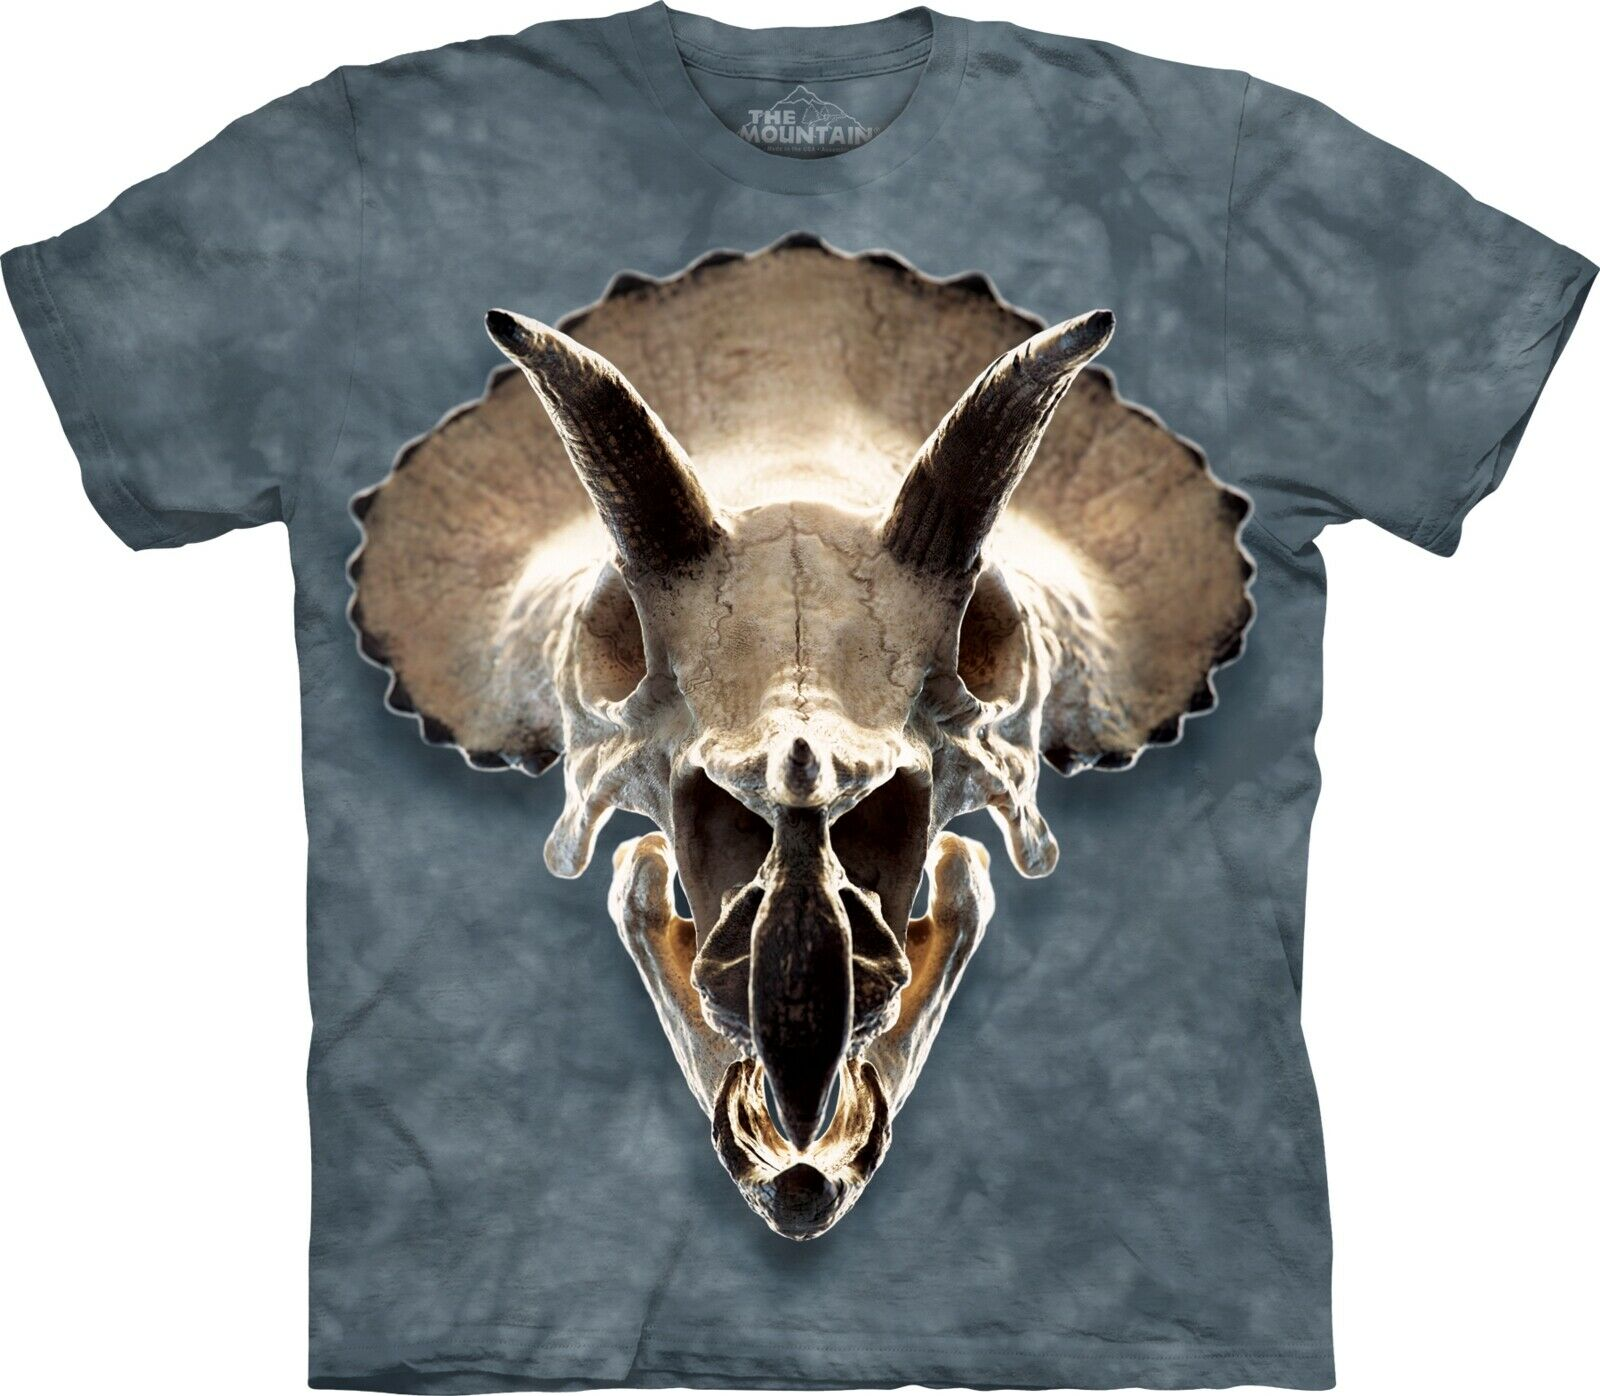 The Mountain Unisex Adult Triceratops Skull Dinosaur Dinosaur Dinosaur T Shirt | Up-to-date-styling